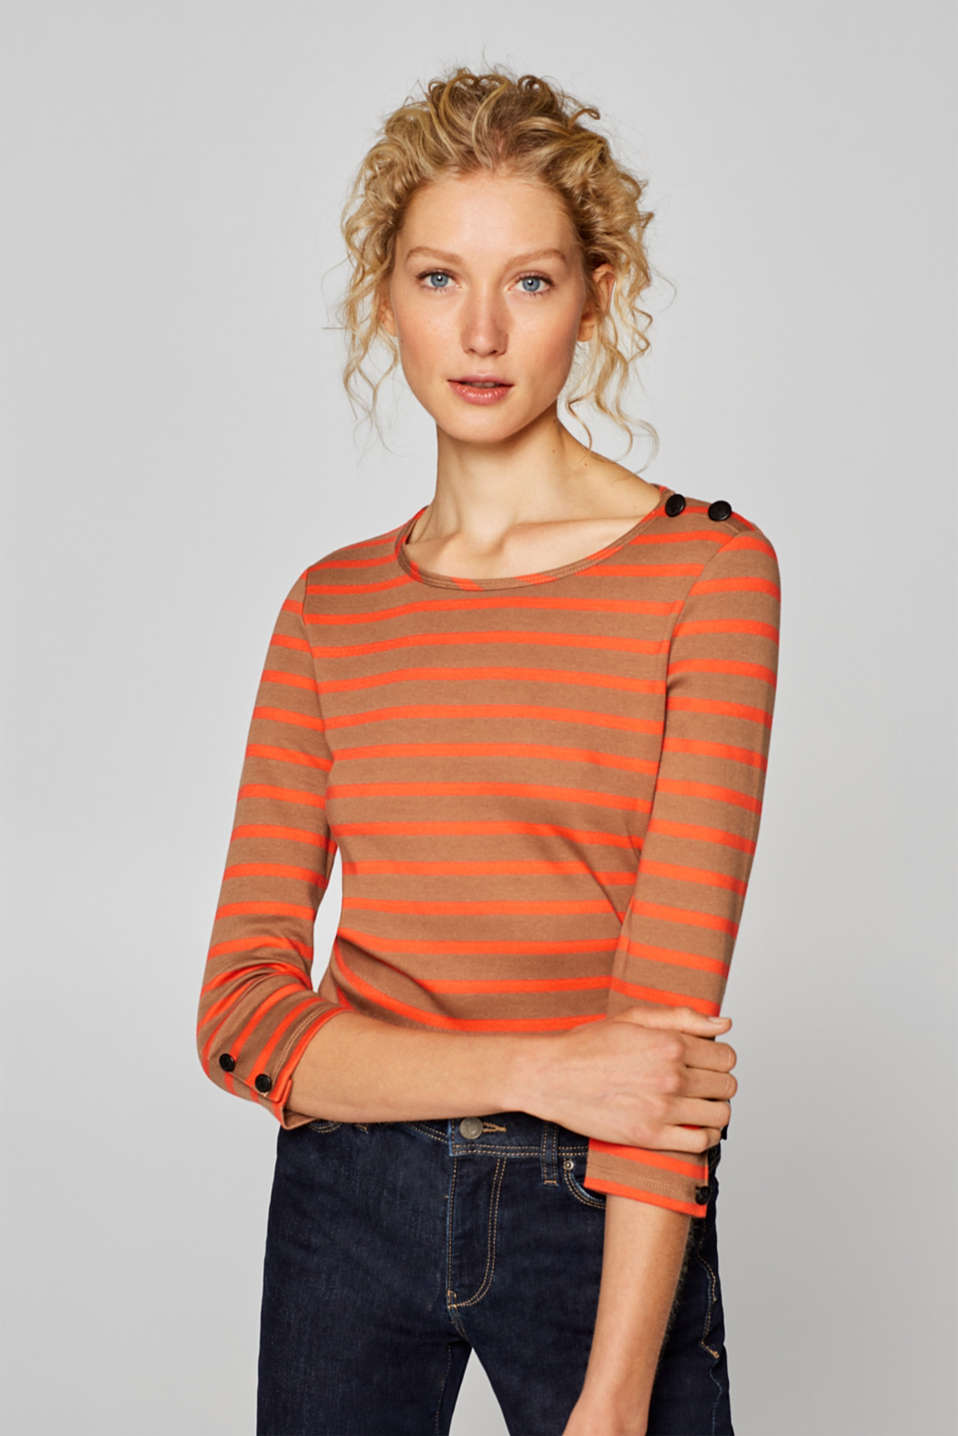 Esprit - Striped T-shirt with buttons, 100% cotton